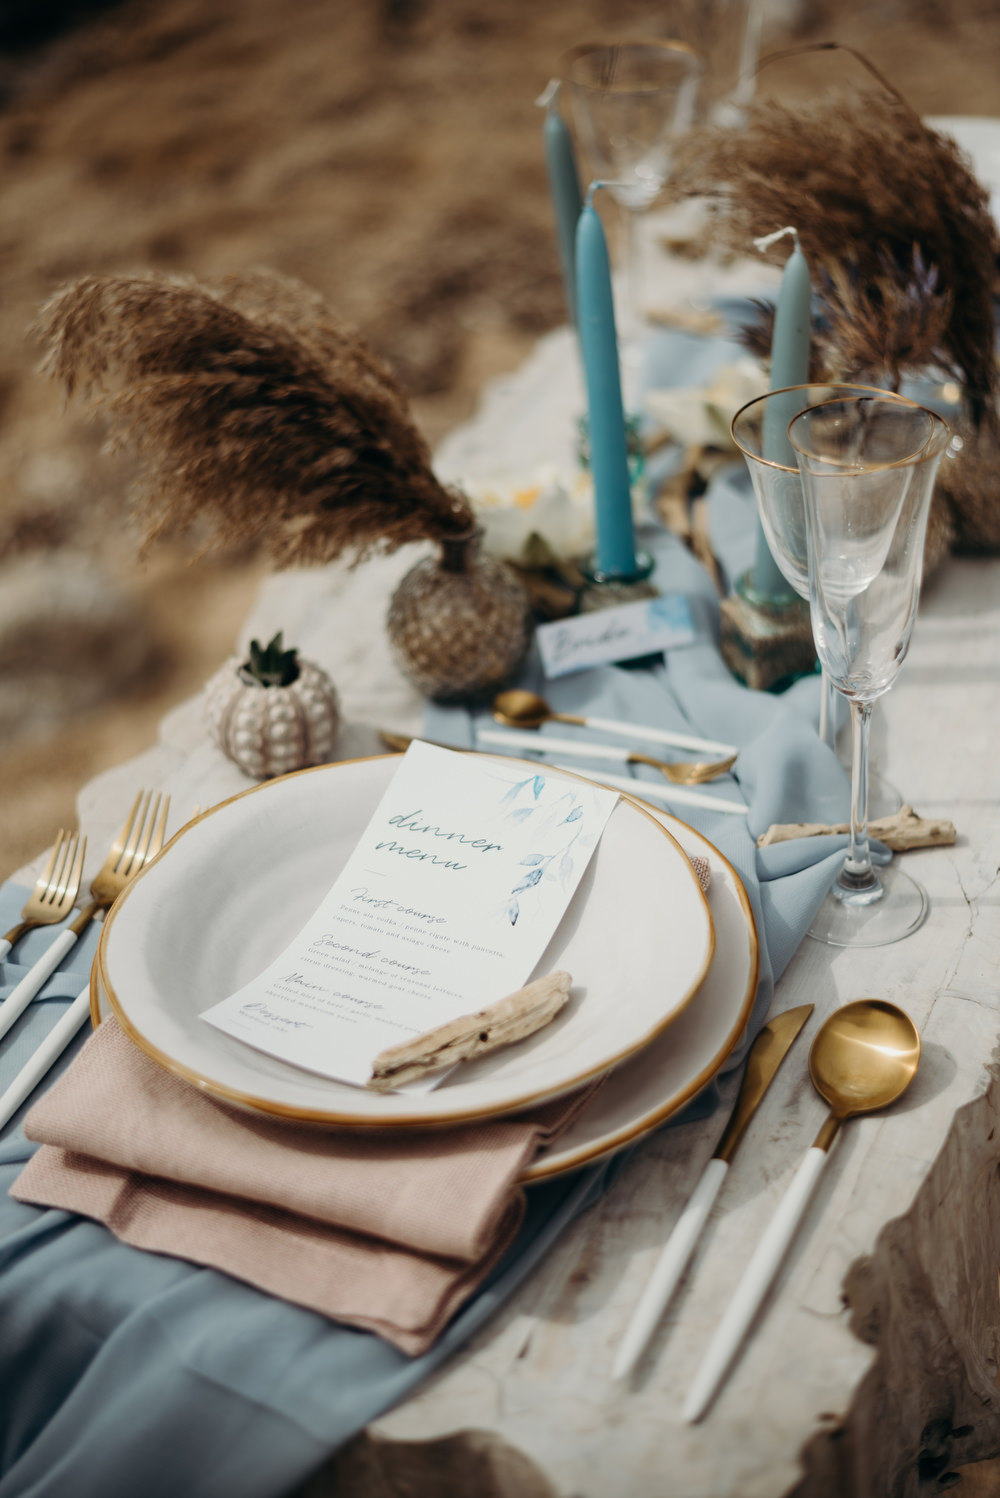 Outdoor Wild Nature Destination Spain Europe Coastal Styled Shoot Beach Table Elegant Styling Menu Candles Cutlery   Blue Ibiza Elopement Ideas and Surprise Proposal Serena Genovese Photography